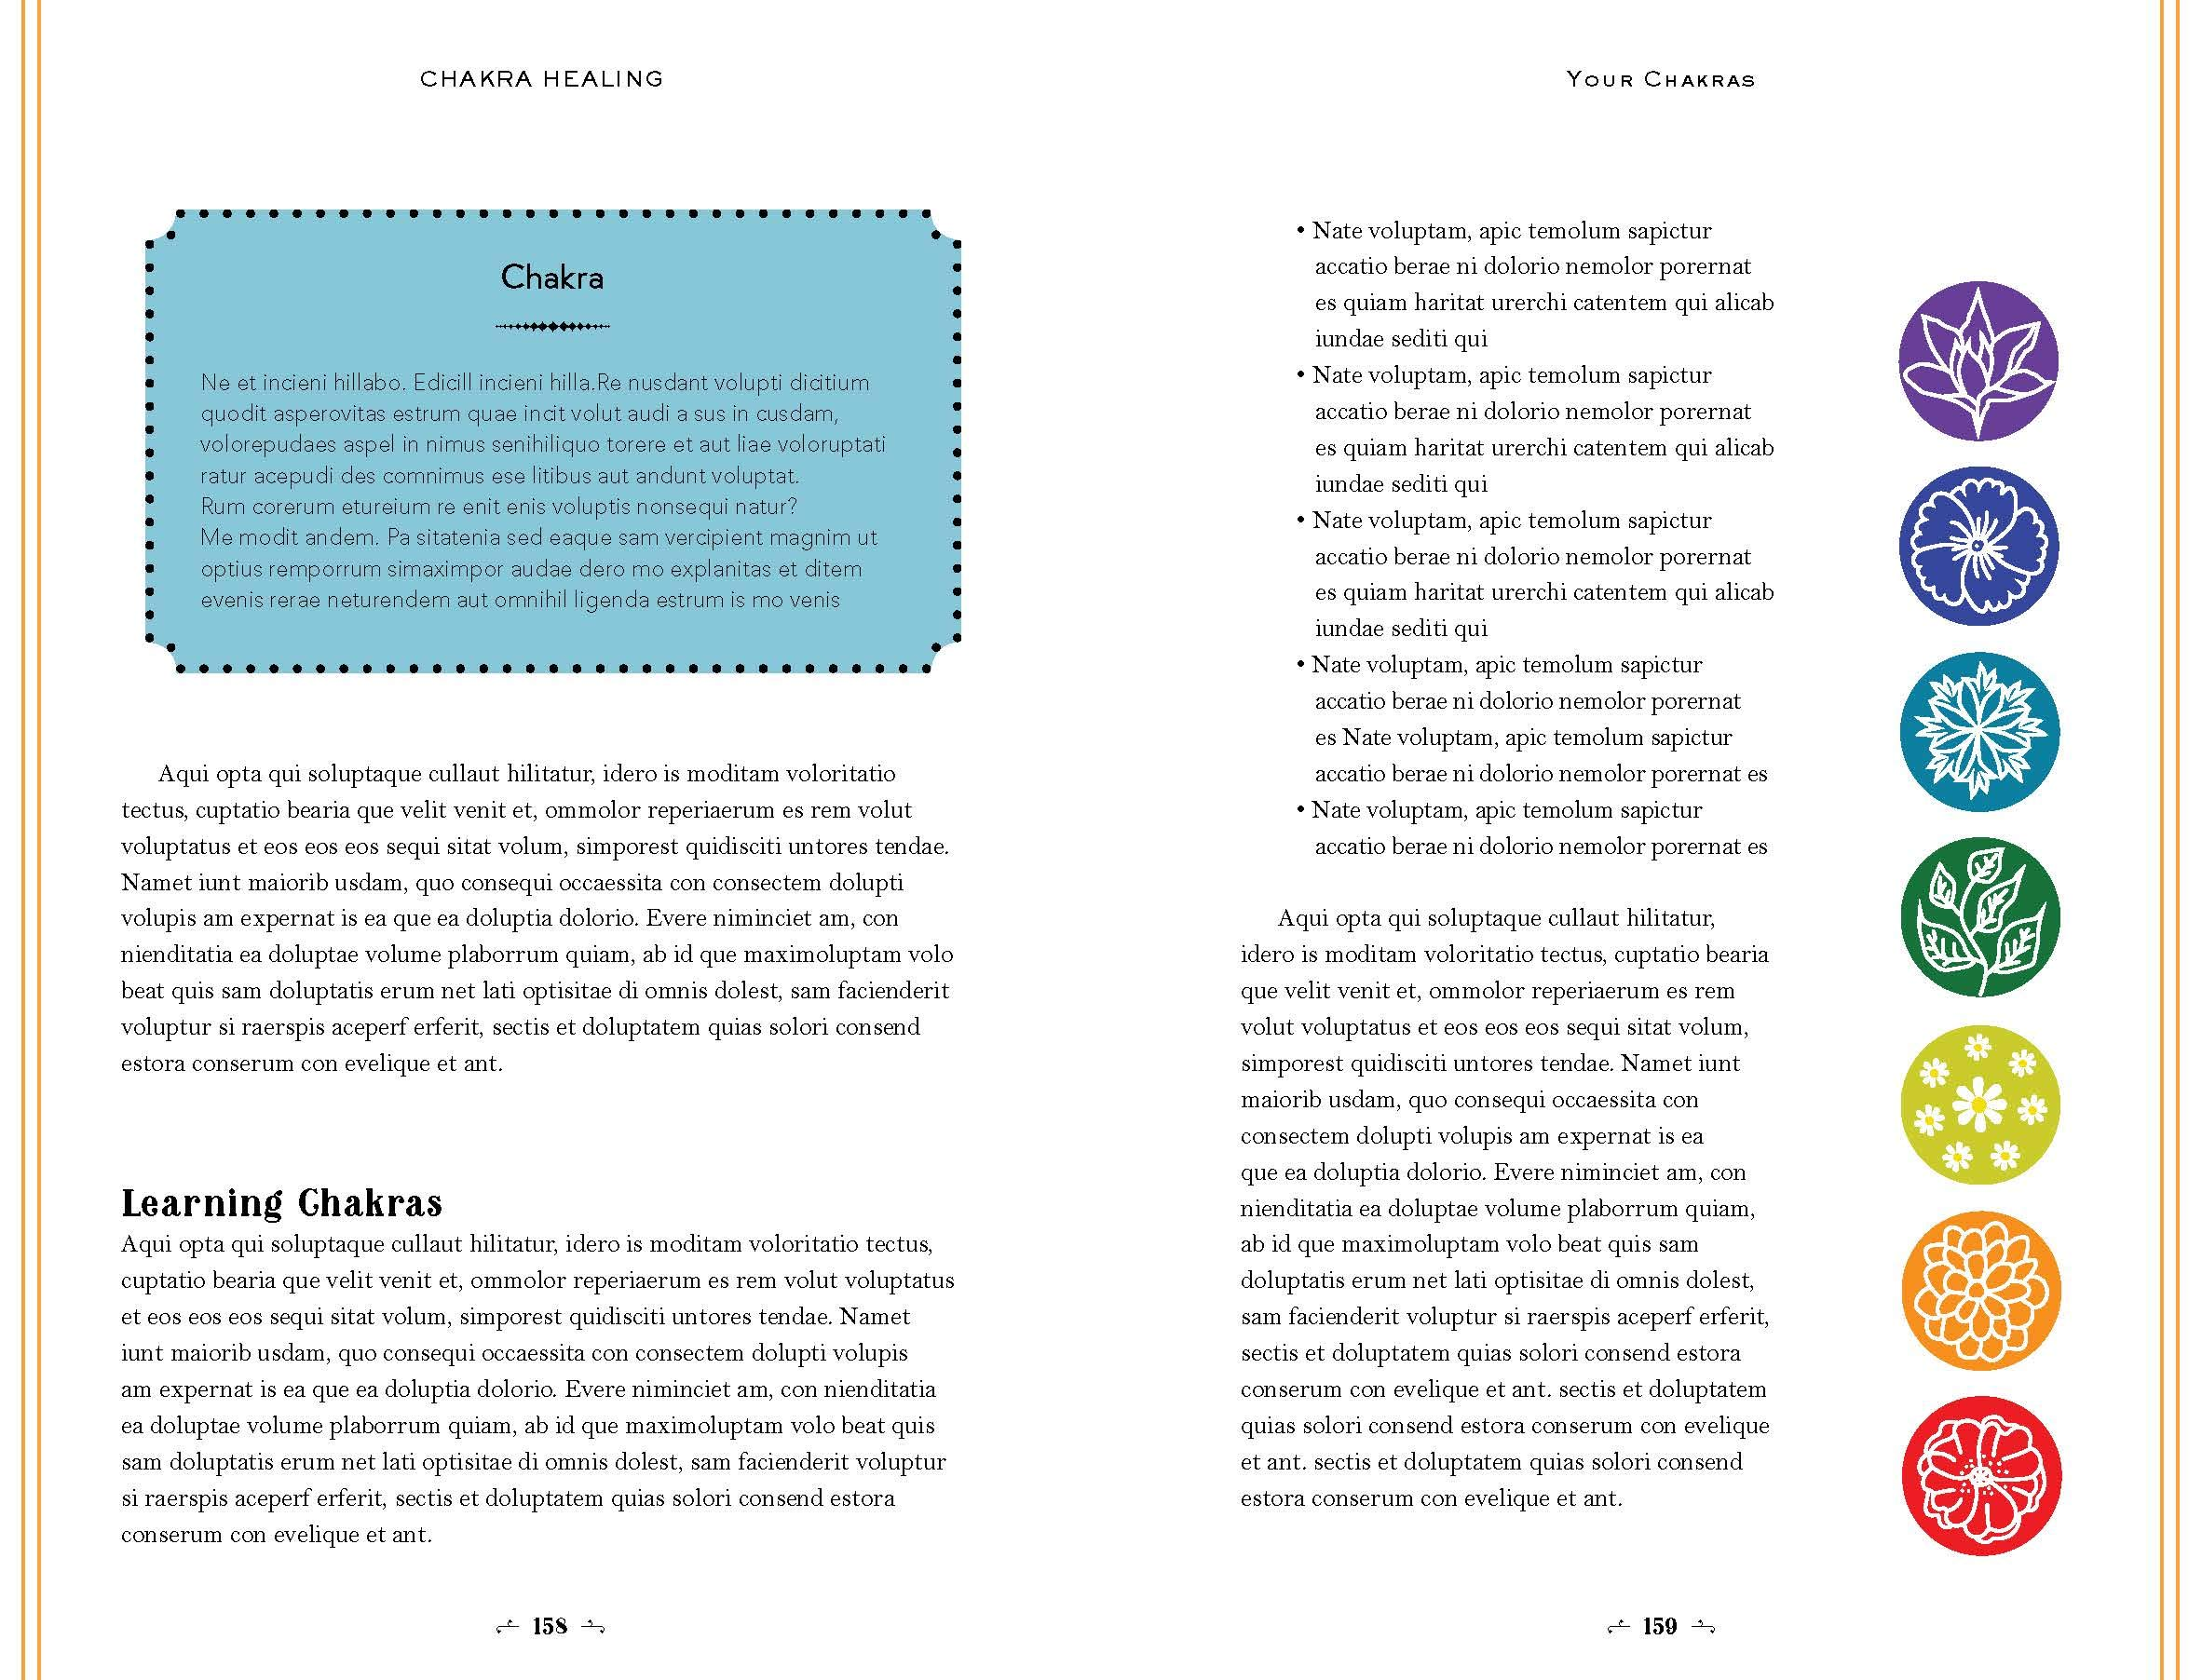 Chakra Healing, Your Personal Guide by Roberta Vernon